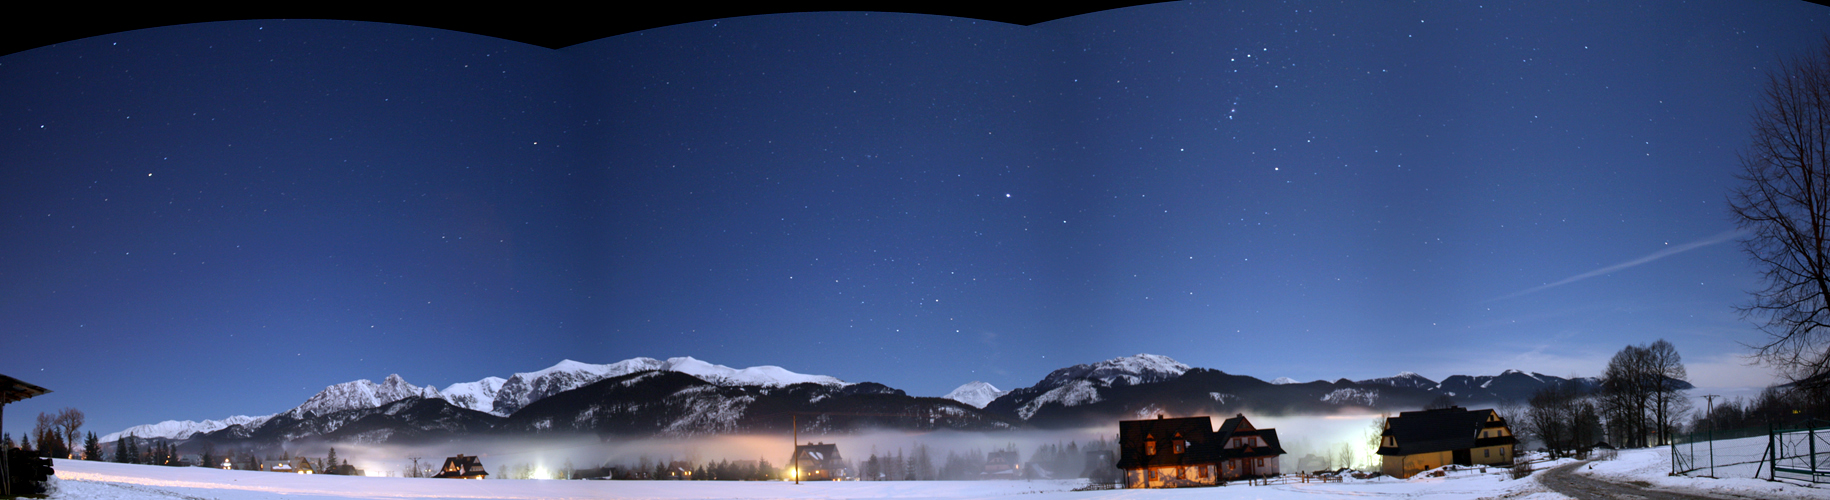 The Tatra Mountains and winter stars